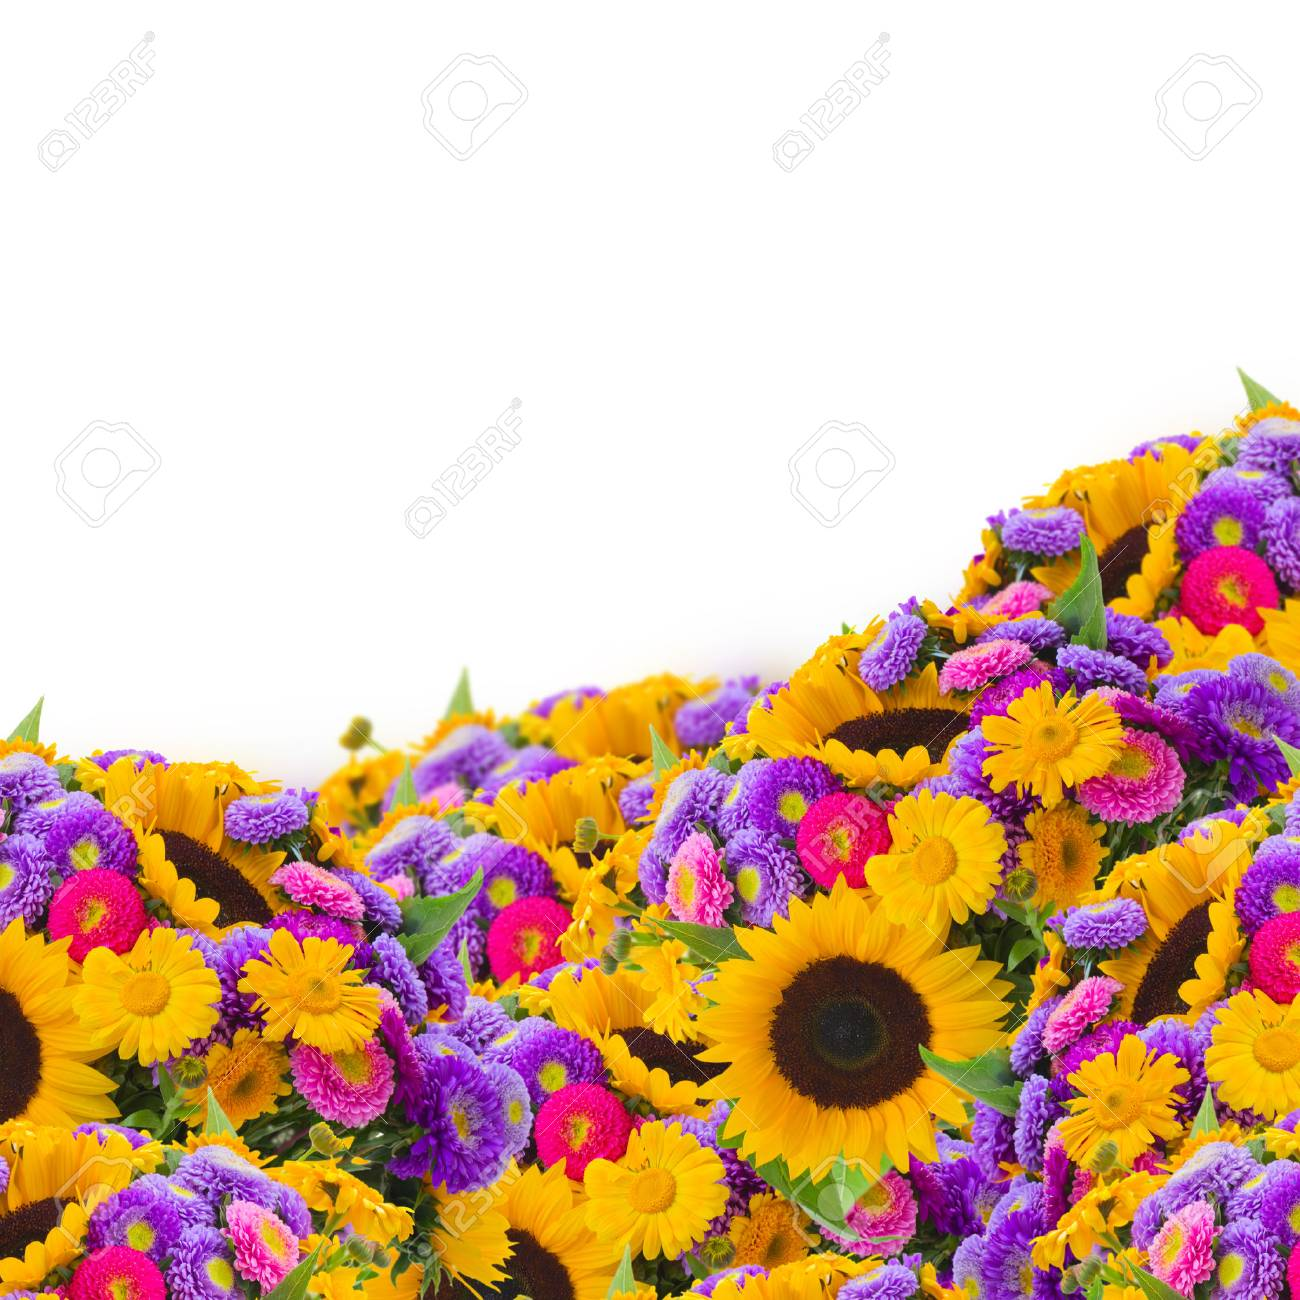 Colorful Field Of Sunflowers And Mums Isolated On White Background 1300x1300